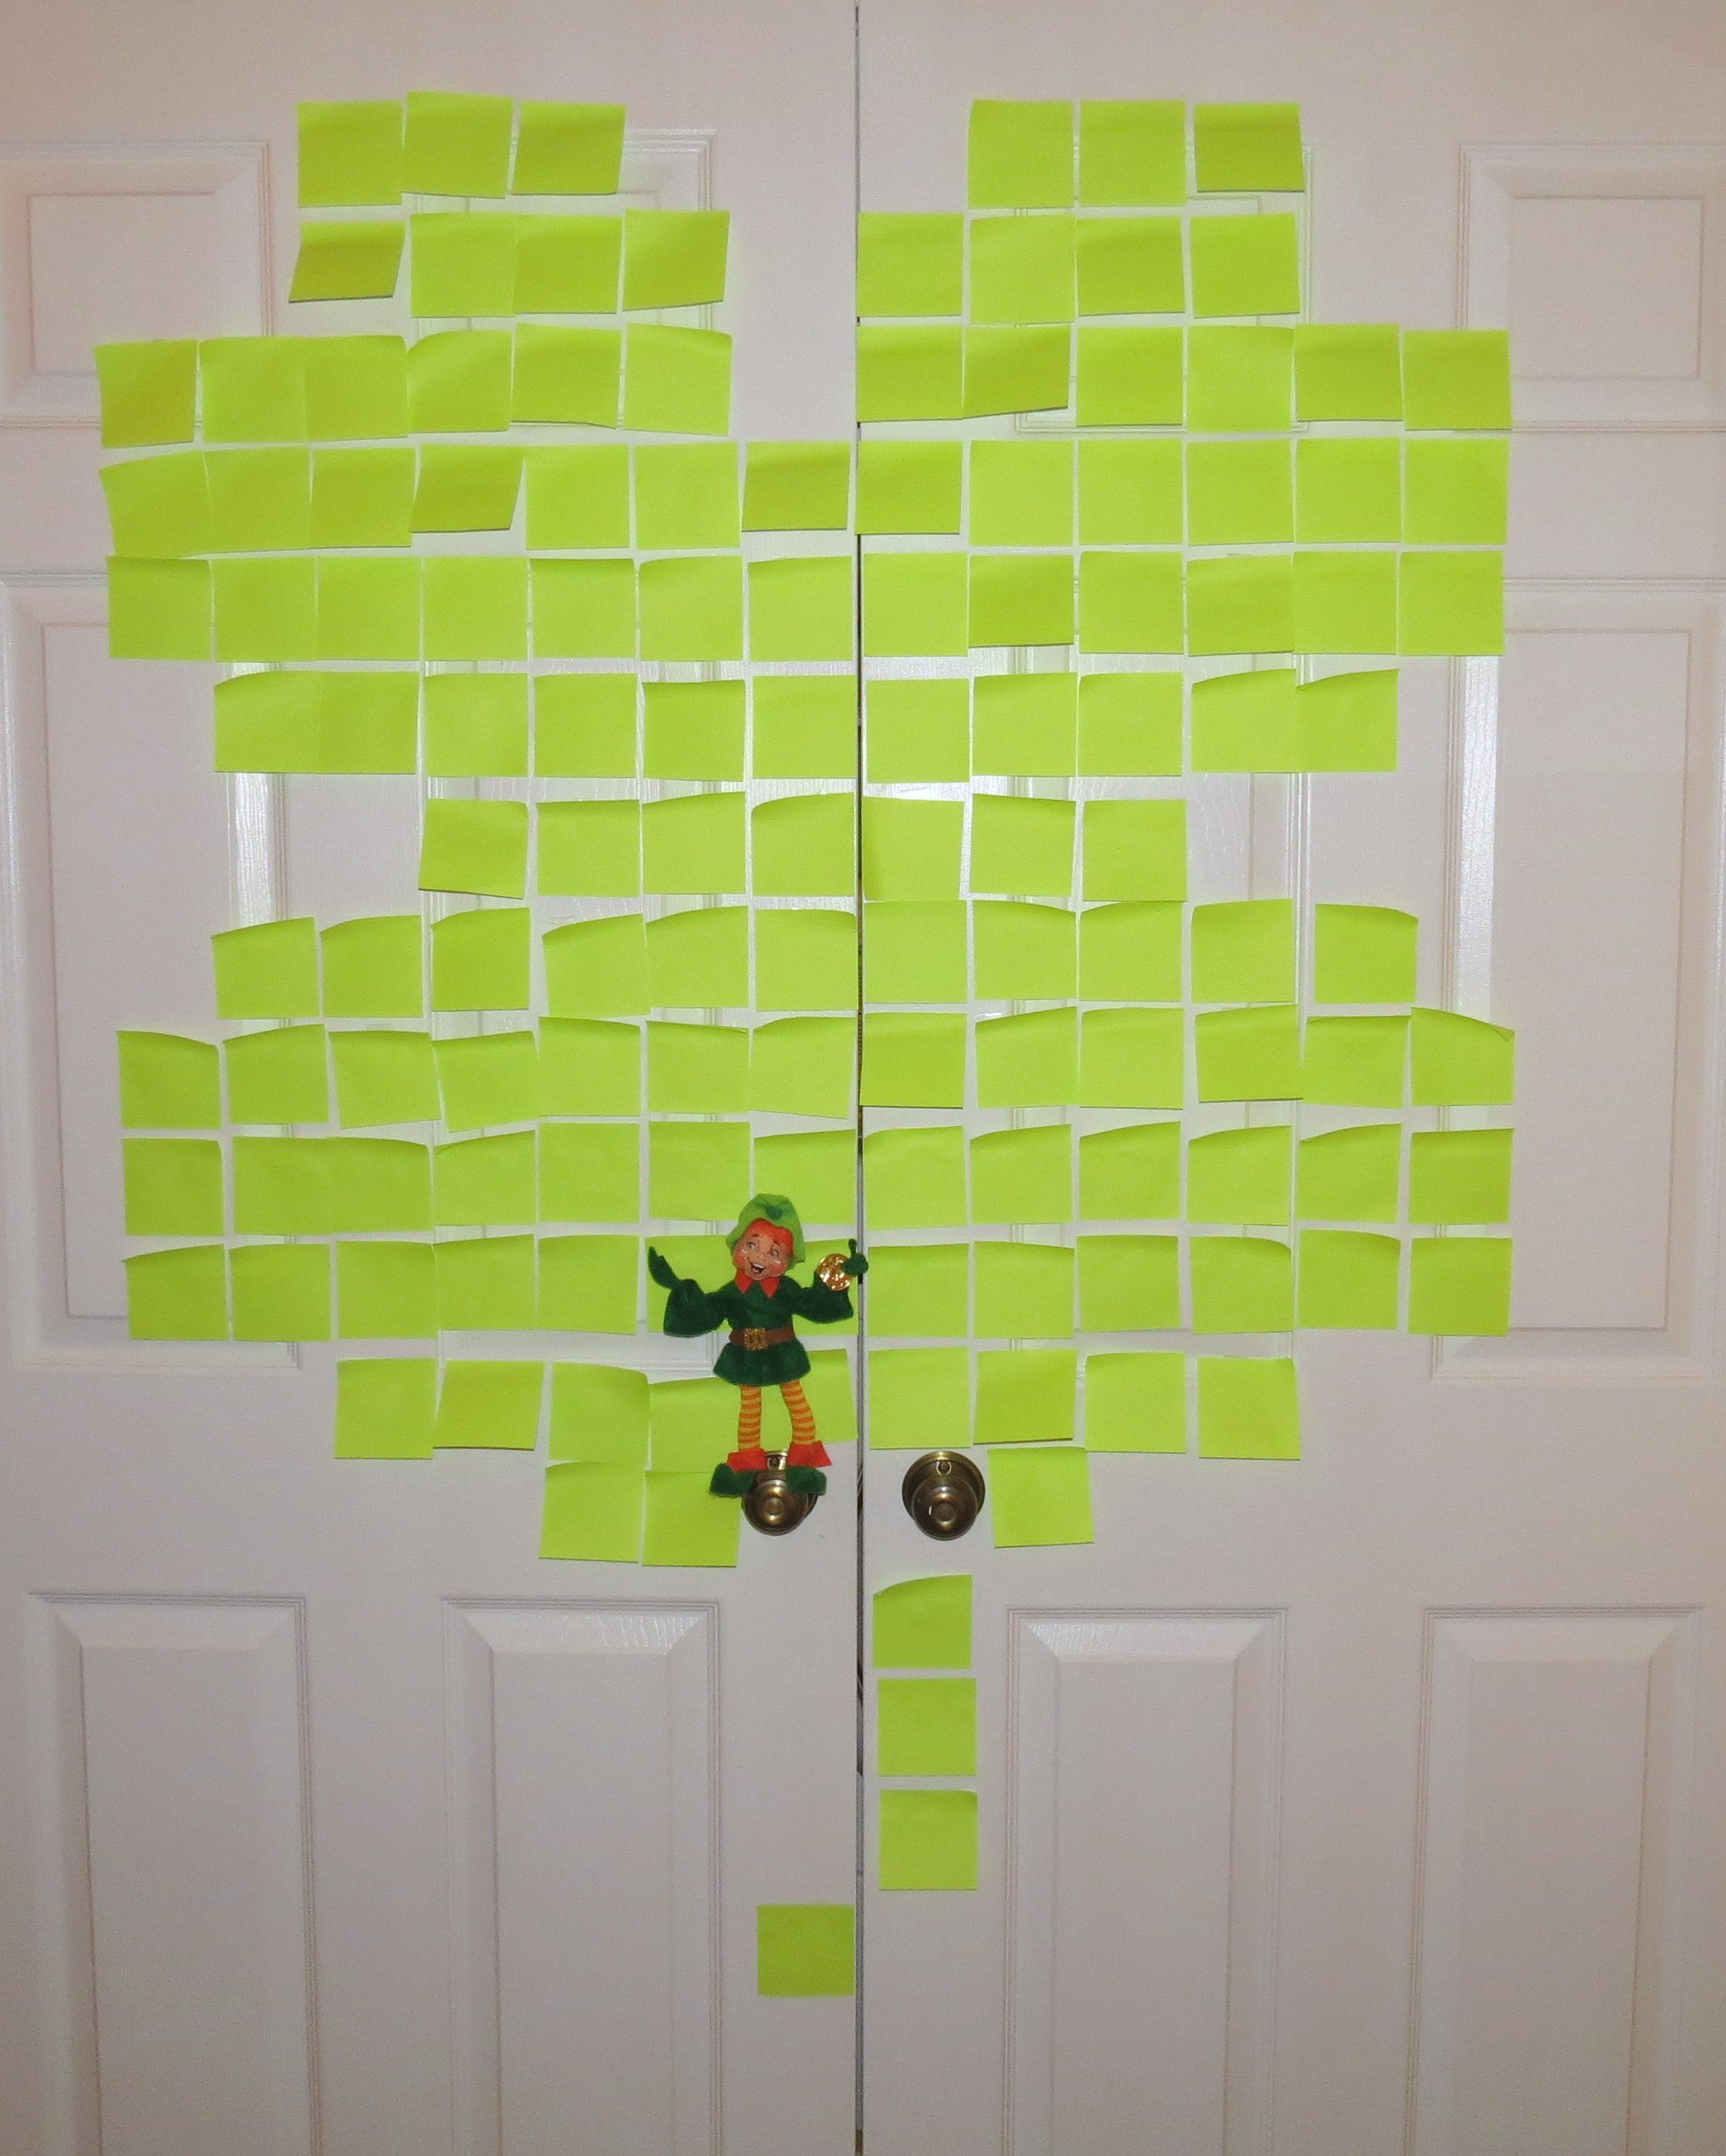 Byrne the leprechaun shamrock Post-It Note art